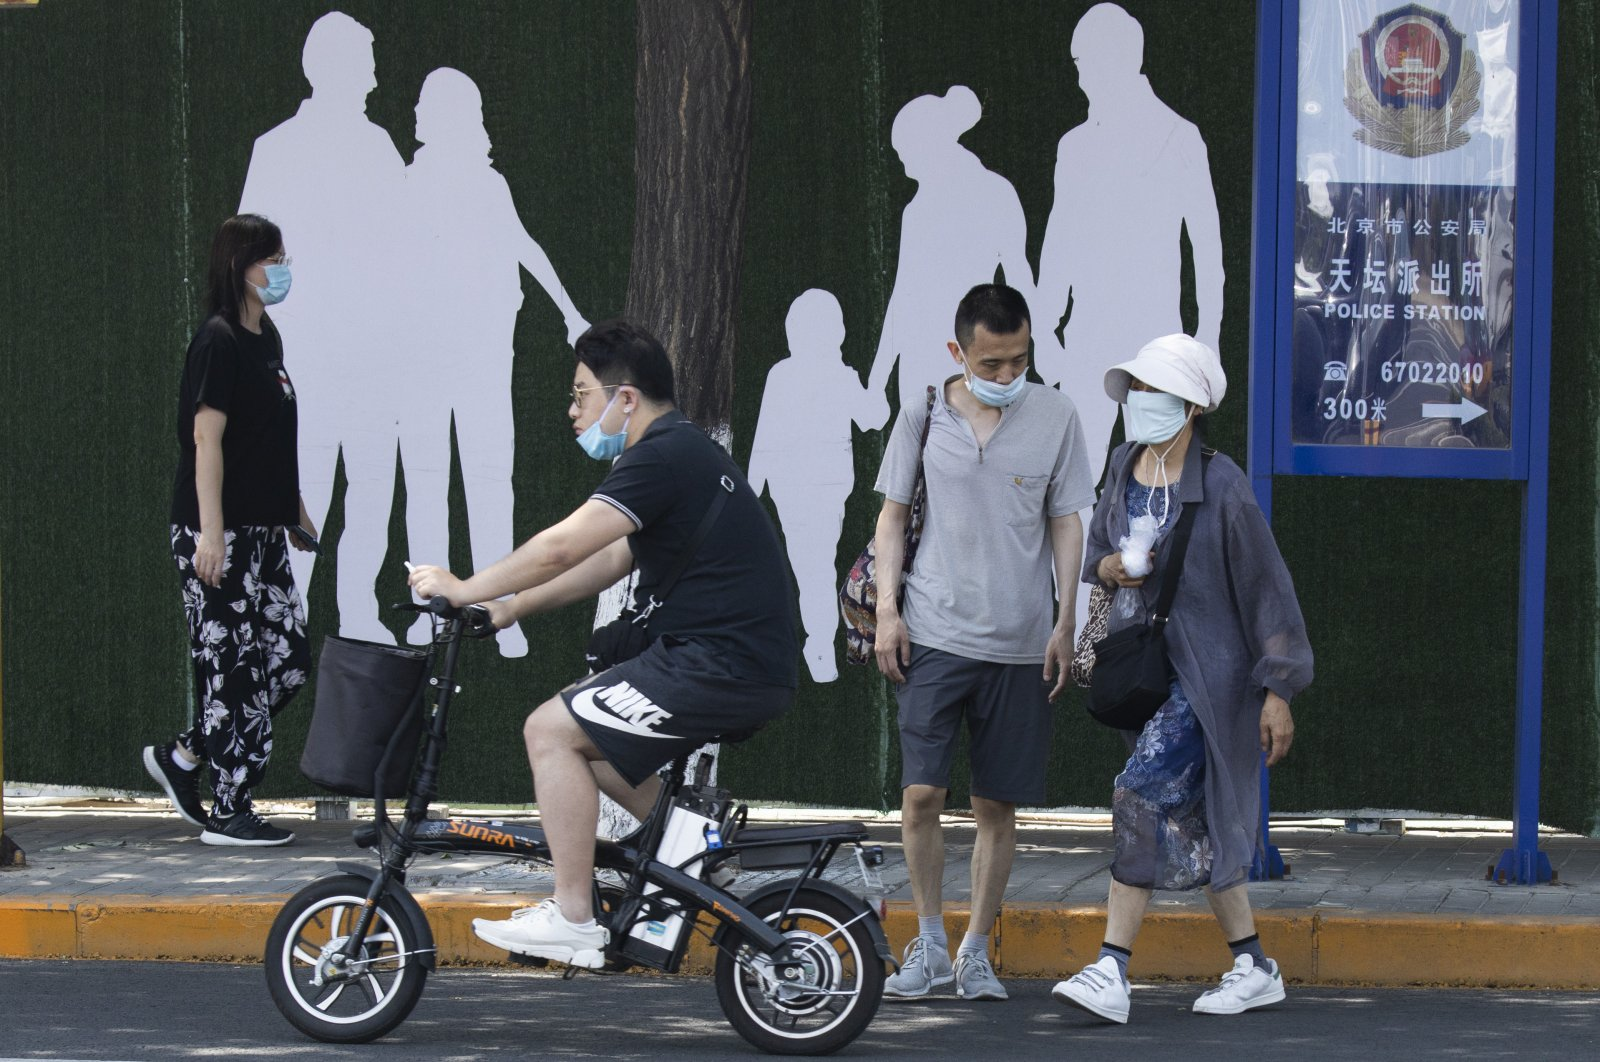 Residents wear masks to curb the spread of the coronavirus on a street of Beijing, June 18, 2020. (AP Photo)